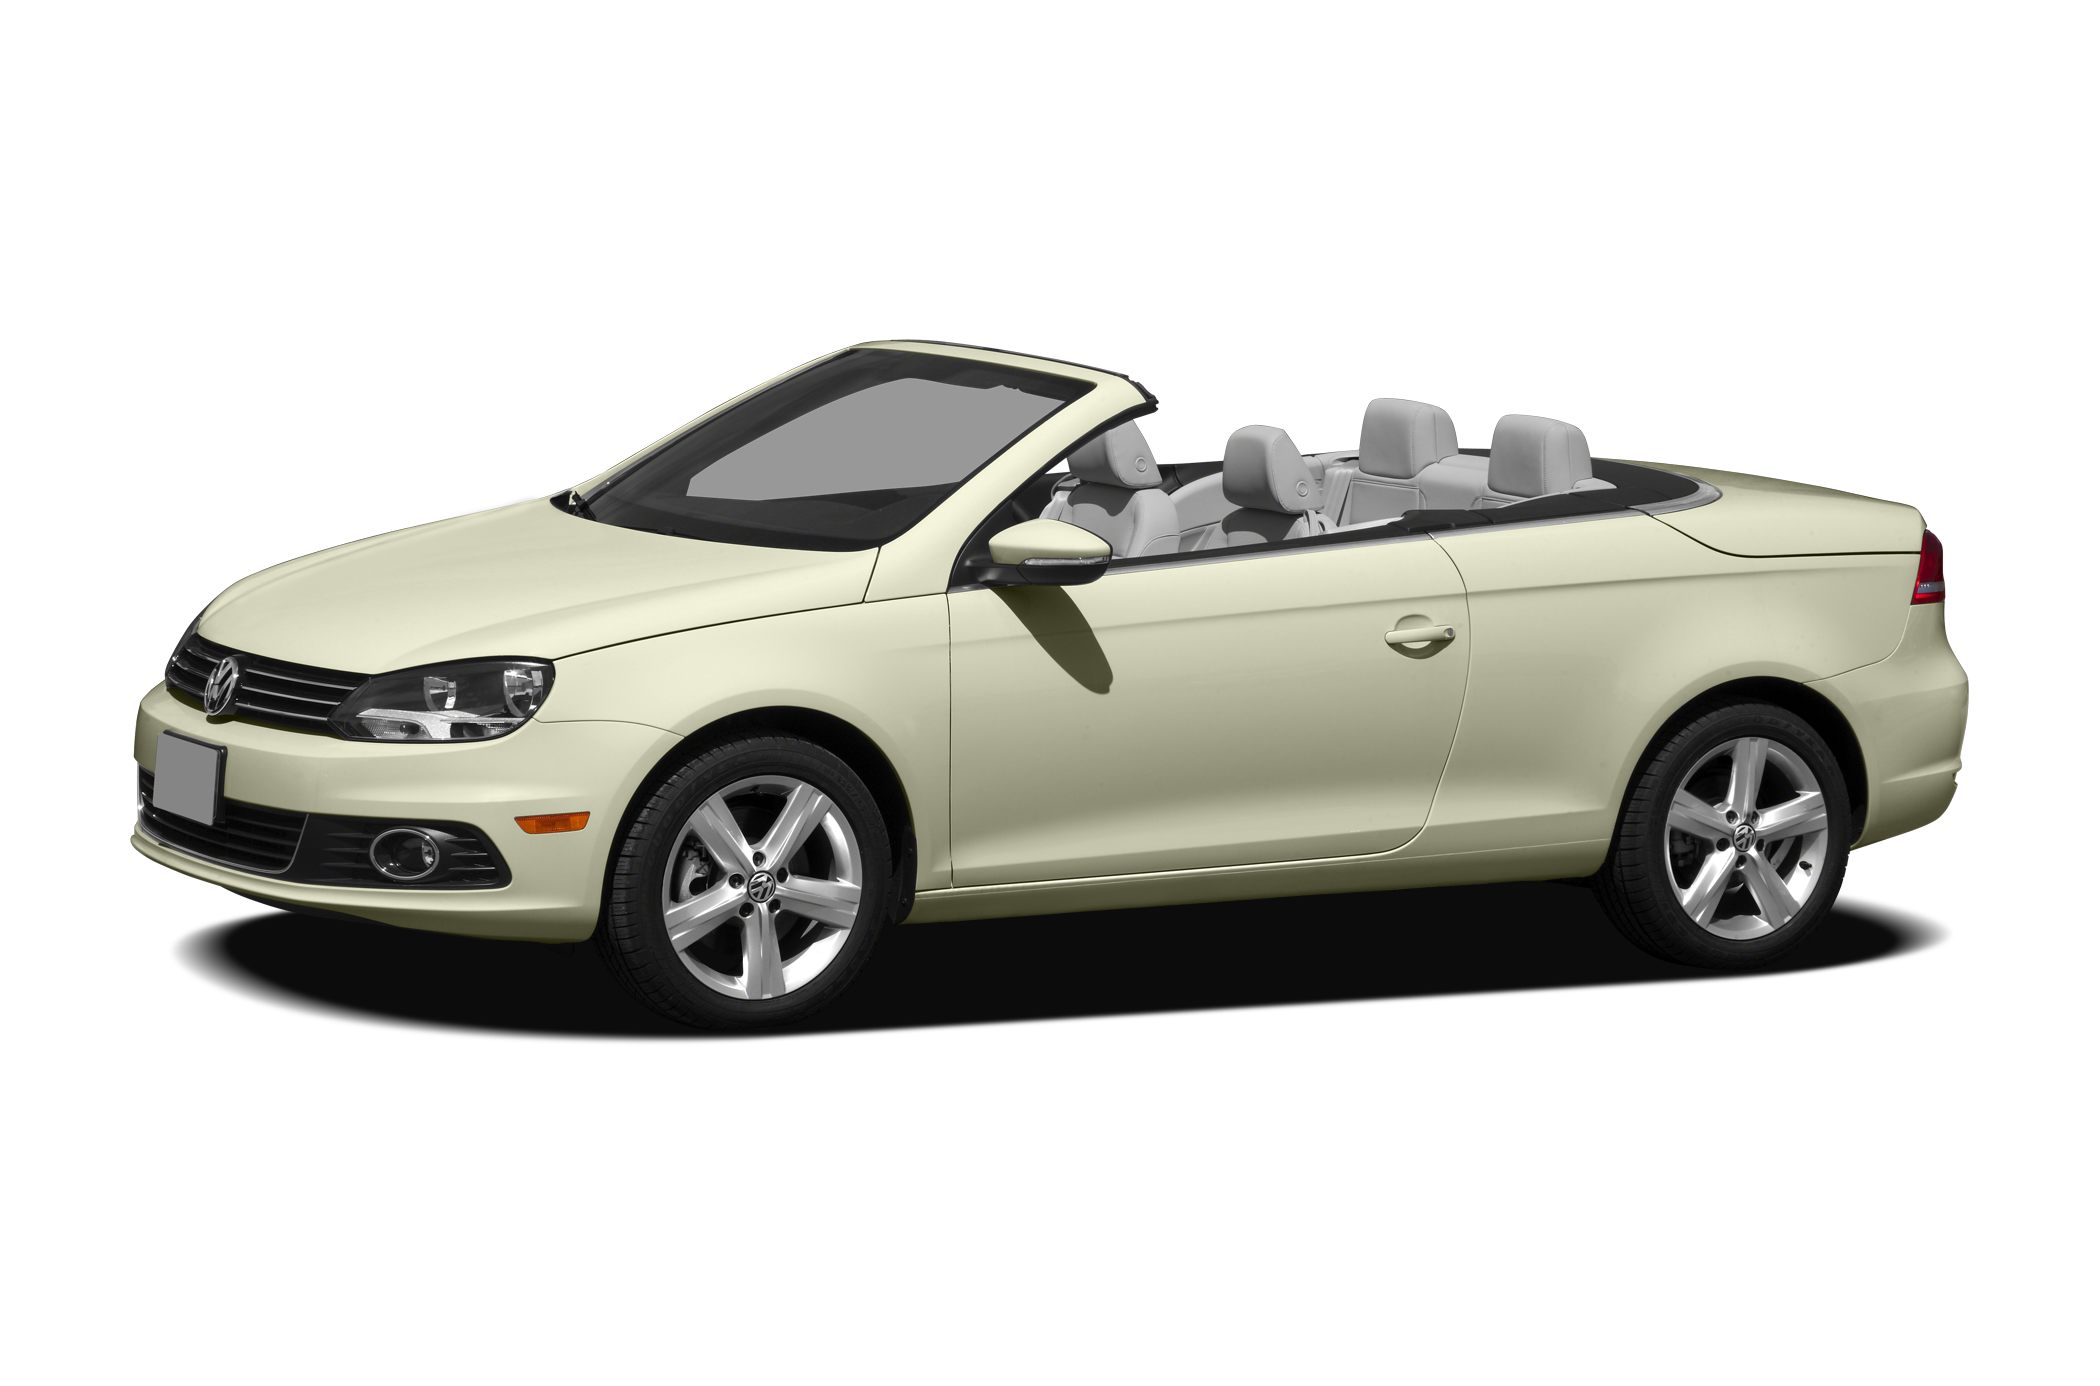 2012 Volkswagen Eos Komfort Convertible for sale in Watertown for $22,468 with 28,332 miles.